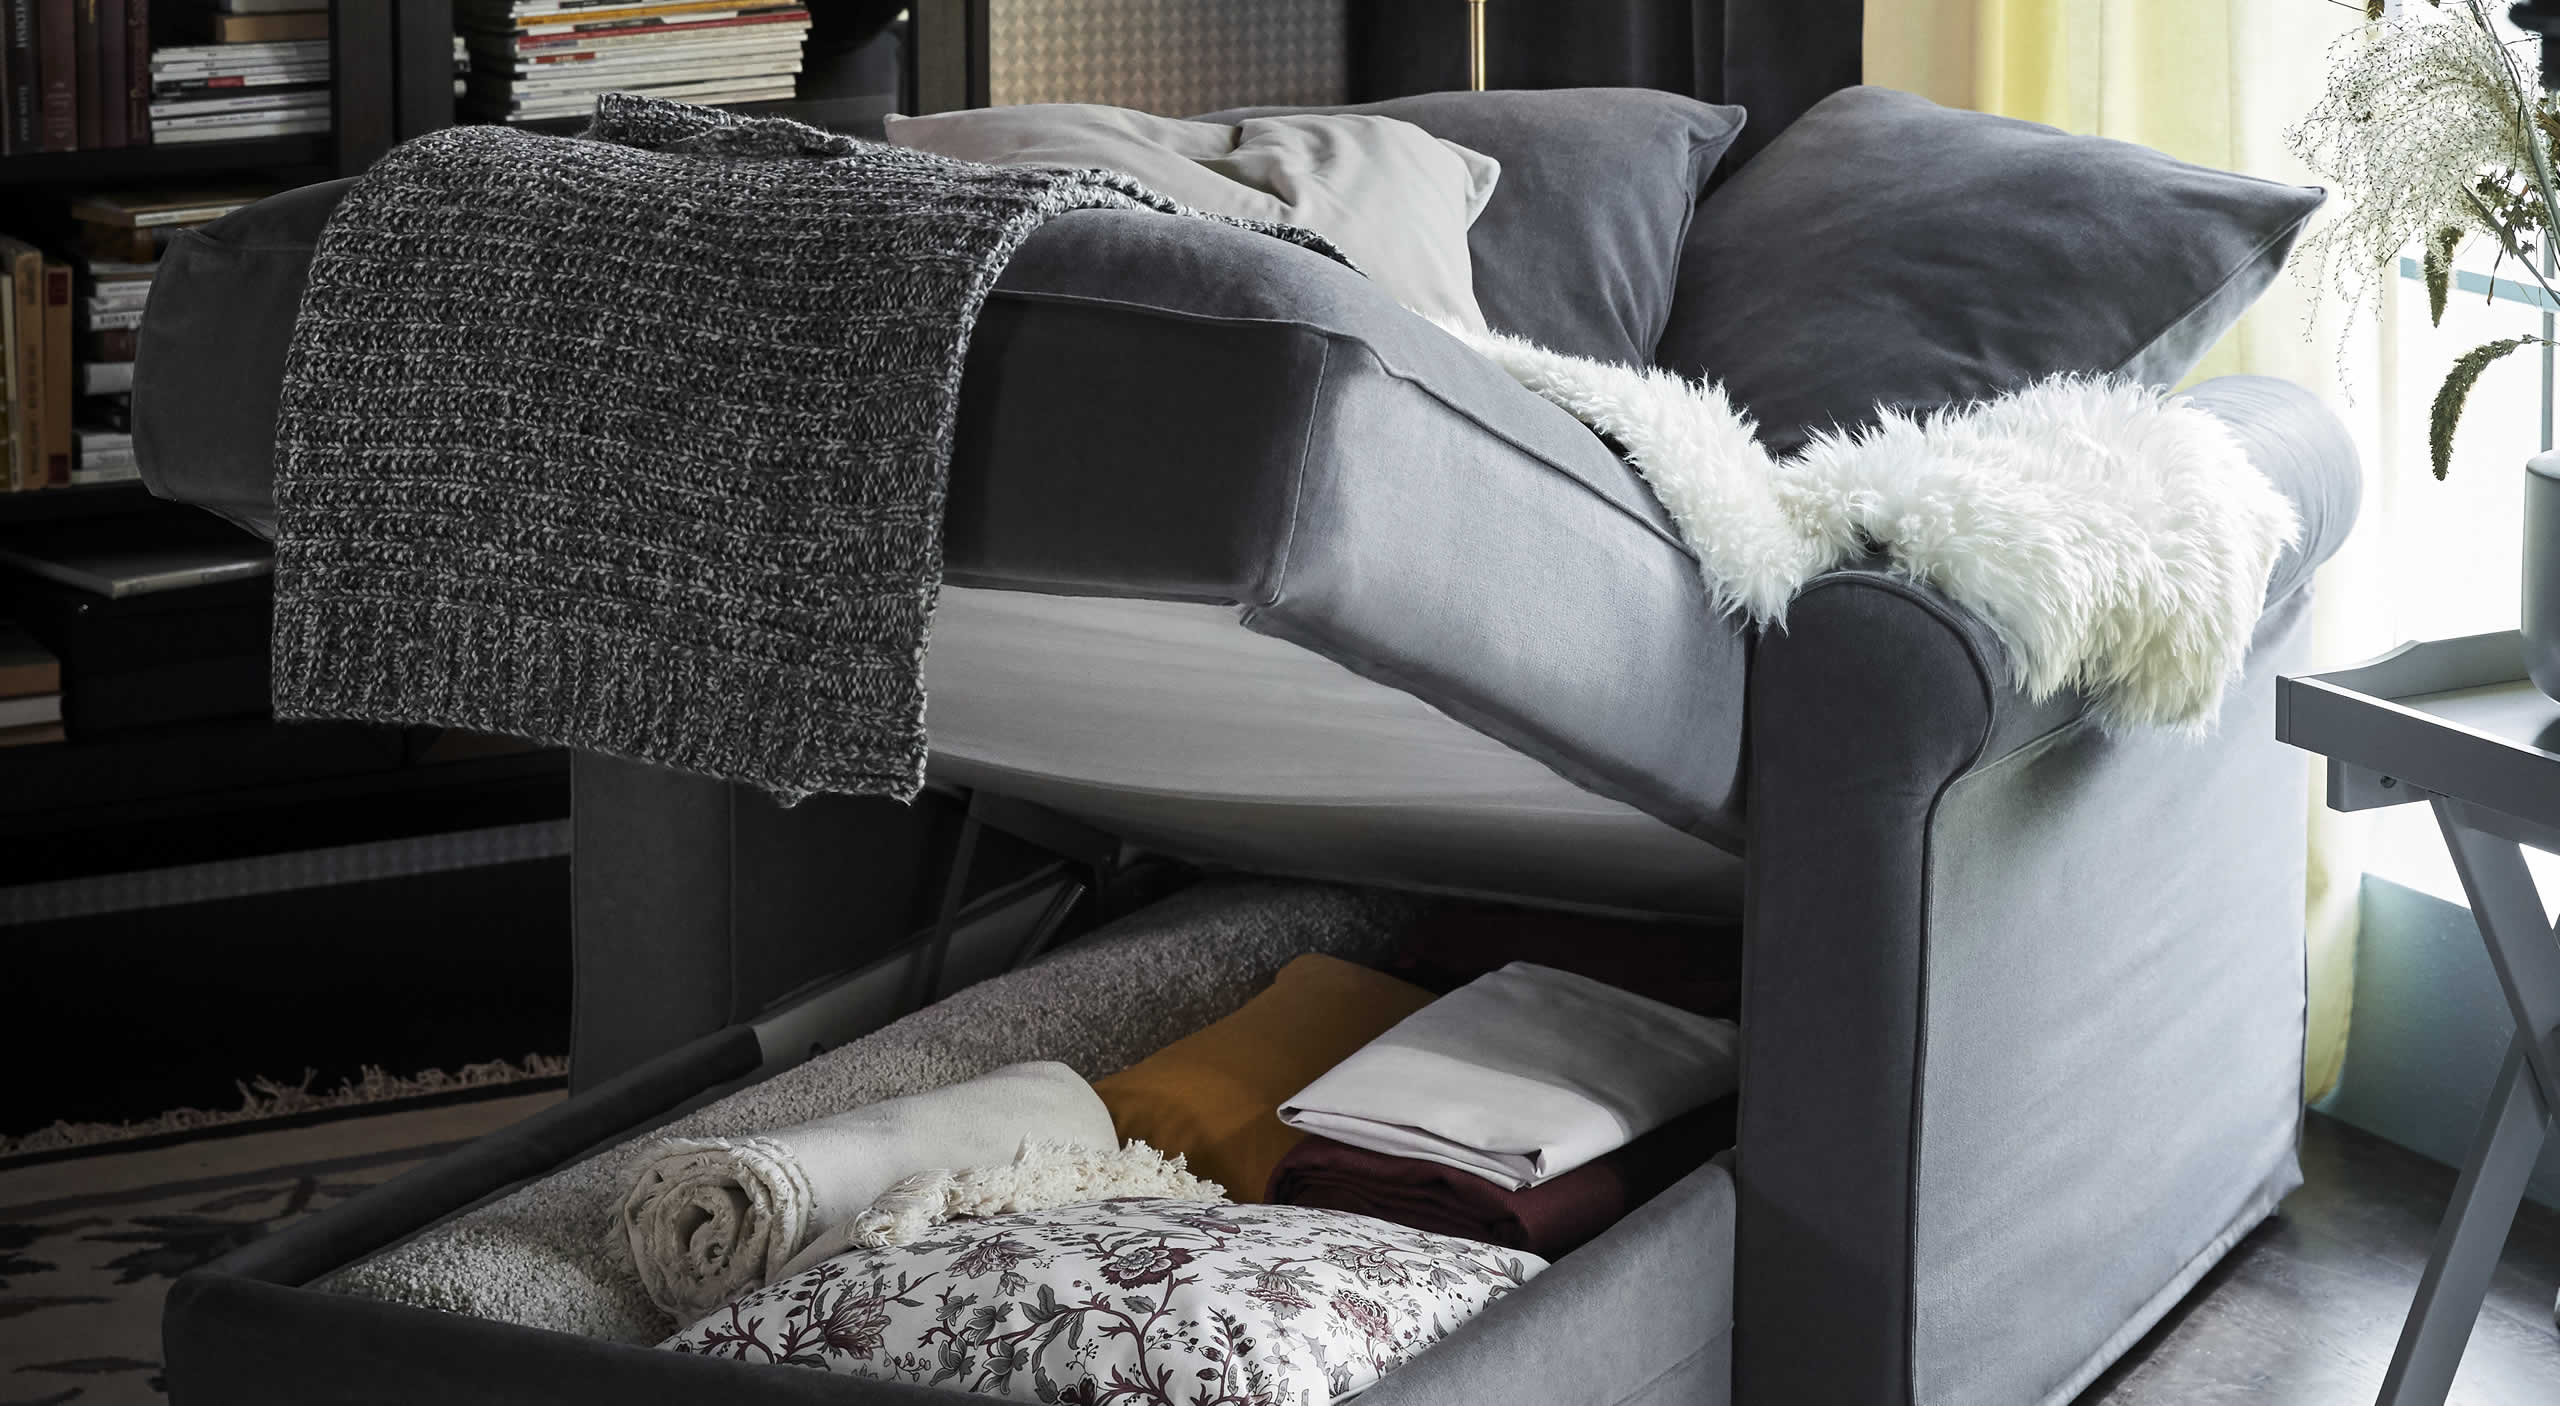 IKEA İyi Fikirler - A reusable living room update with textiles